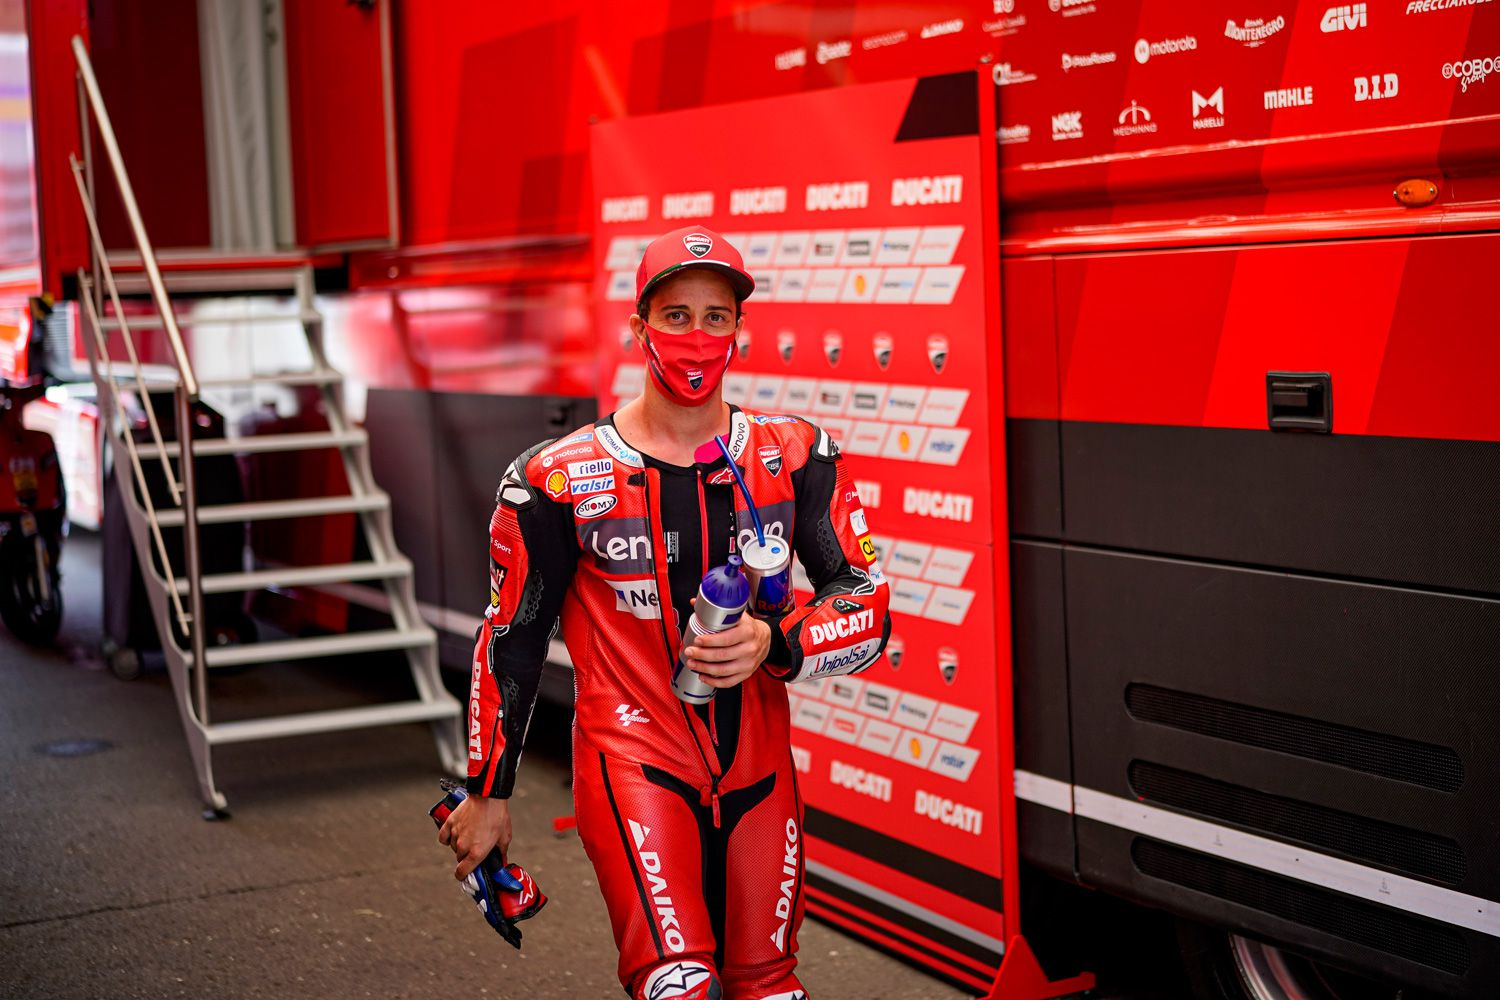 Although his departure has been announced, Dovizioso is committed to fighting for a championship.